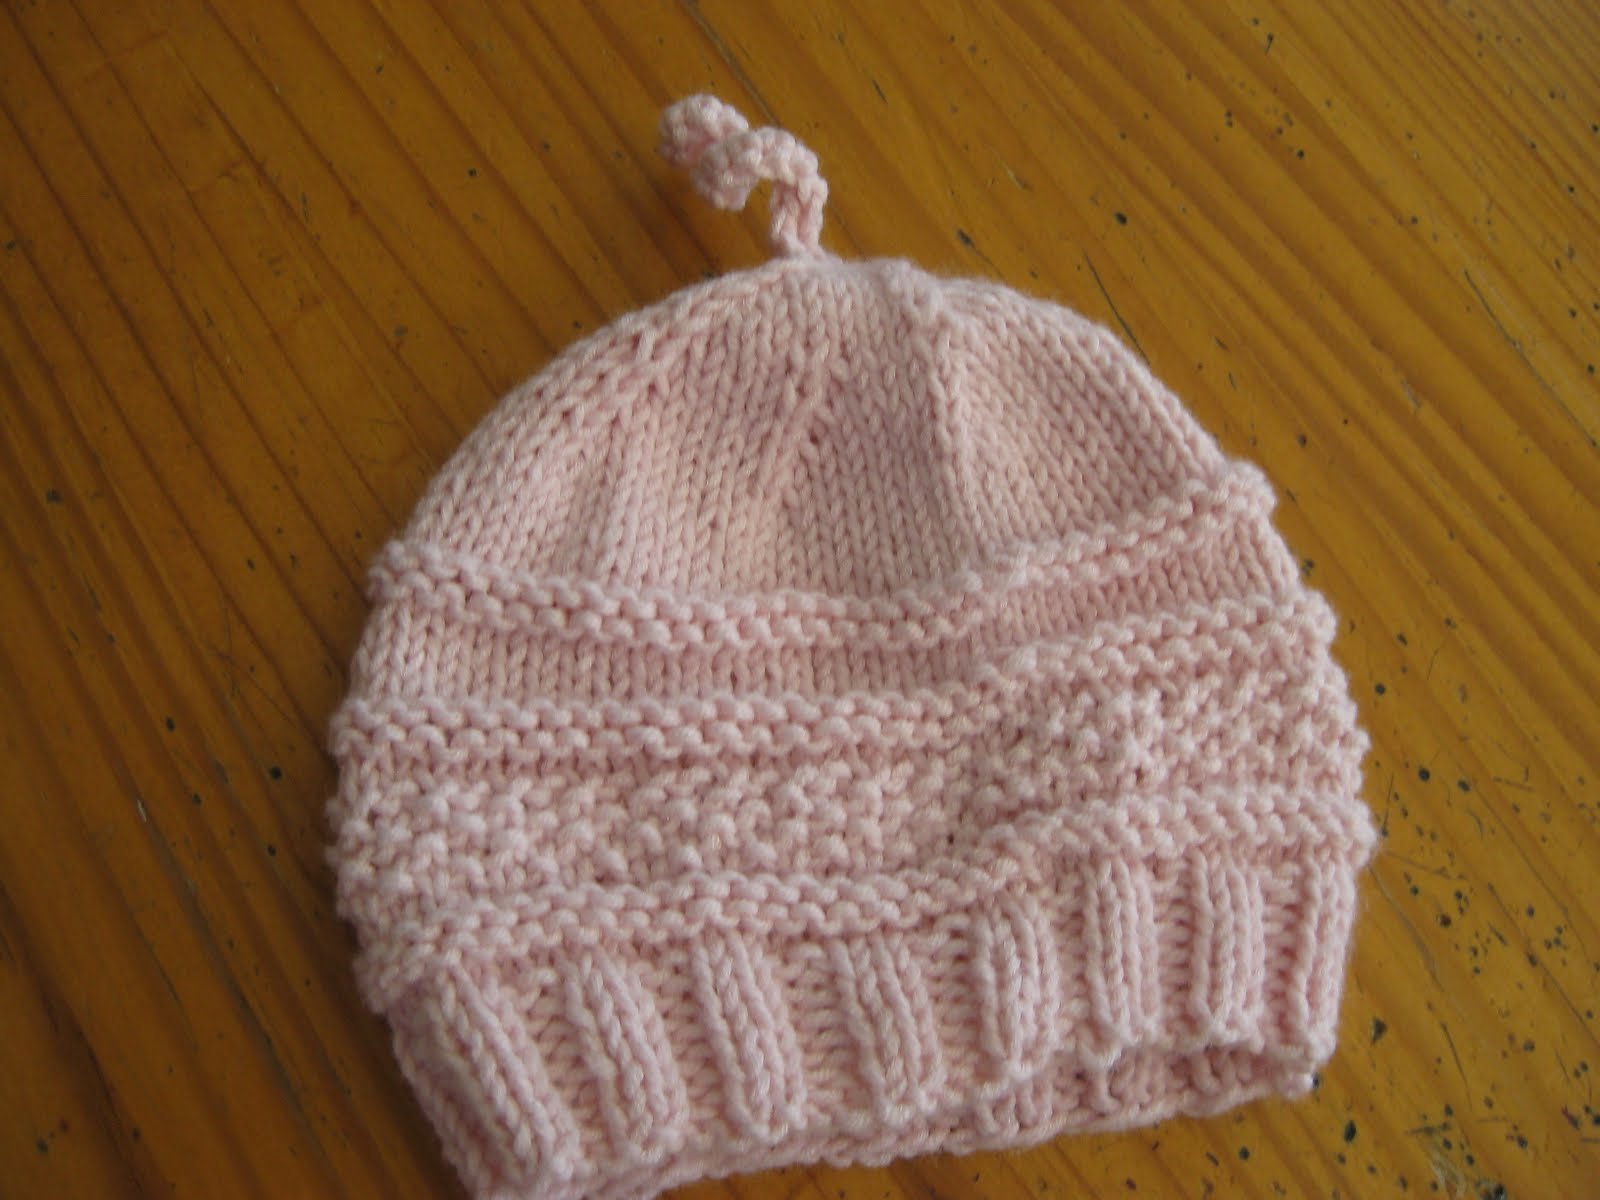 Knitting Patterns For Baby Boy Hats : knitting baby hats-Knitting Gallery